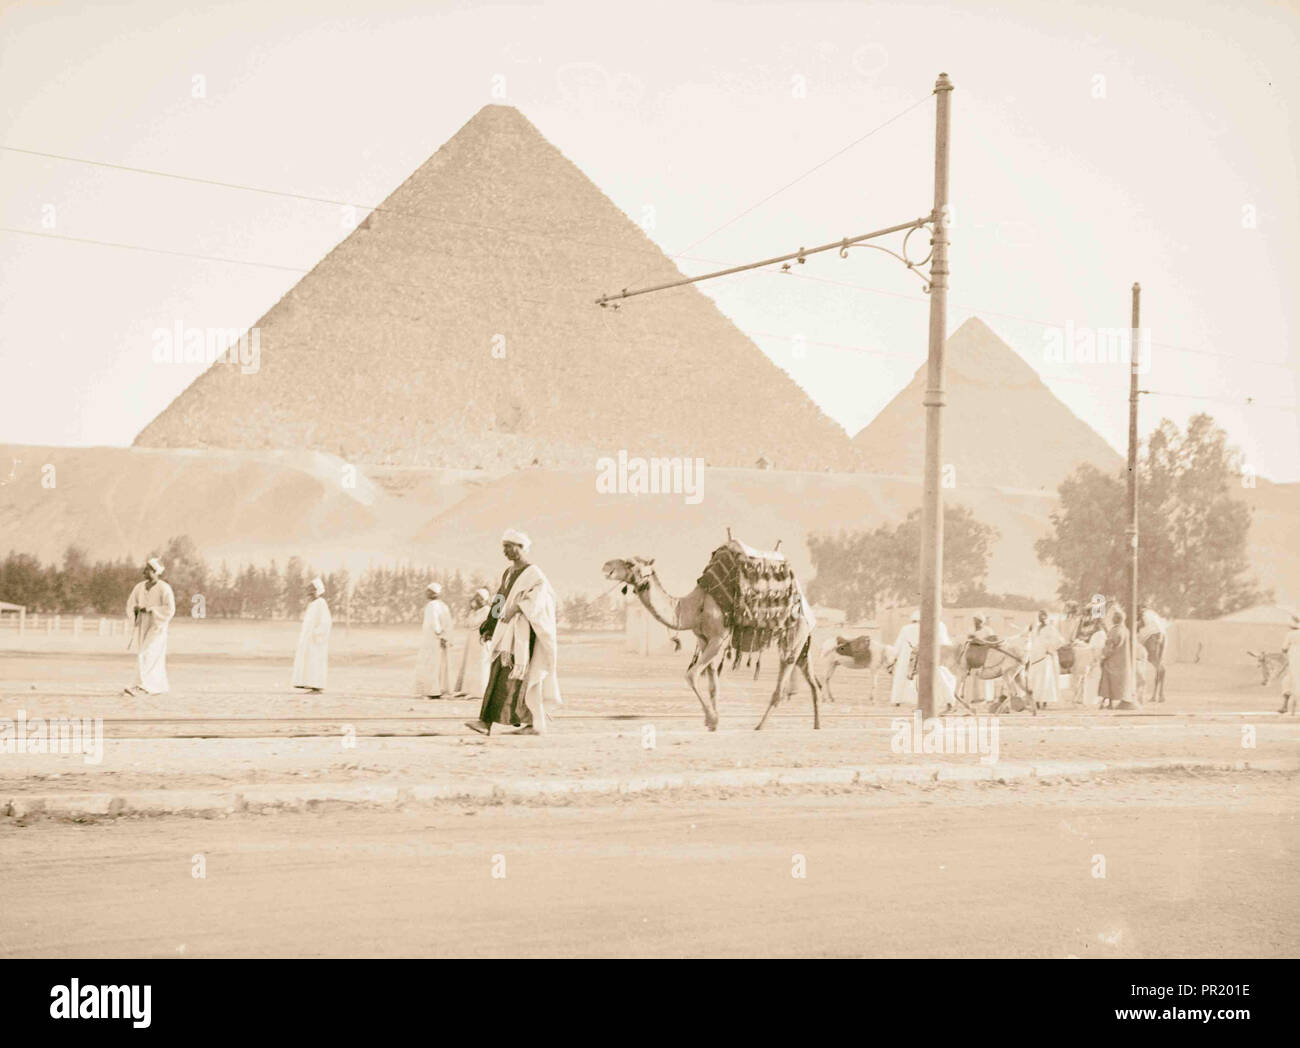 Pyramids of Gizeh. Two great pyramids from end of train line. 1934, Egypt, Jīzah, Jizah - Stock Image